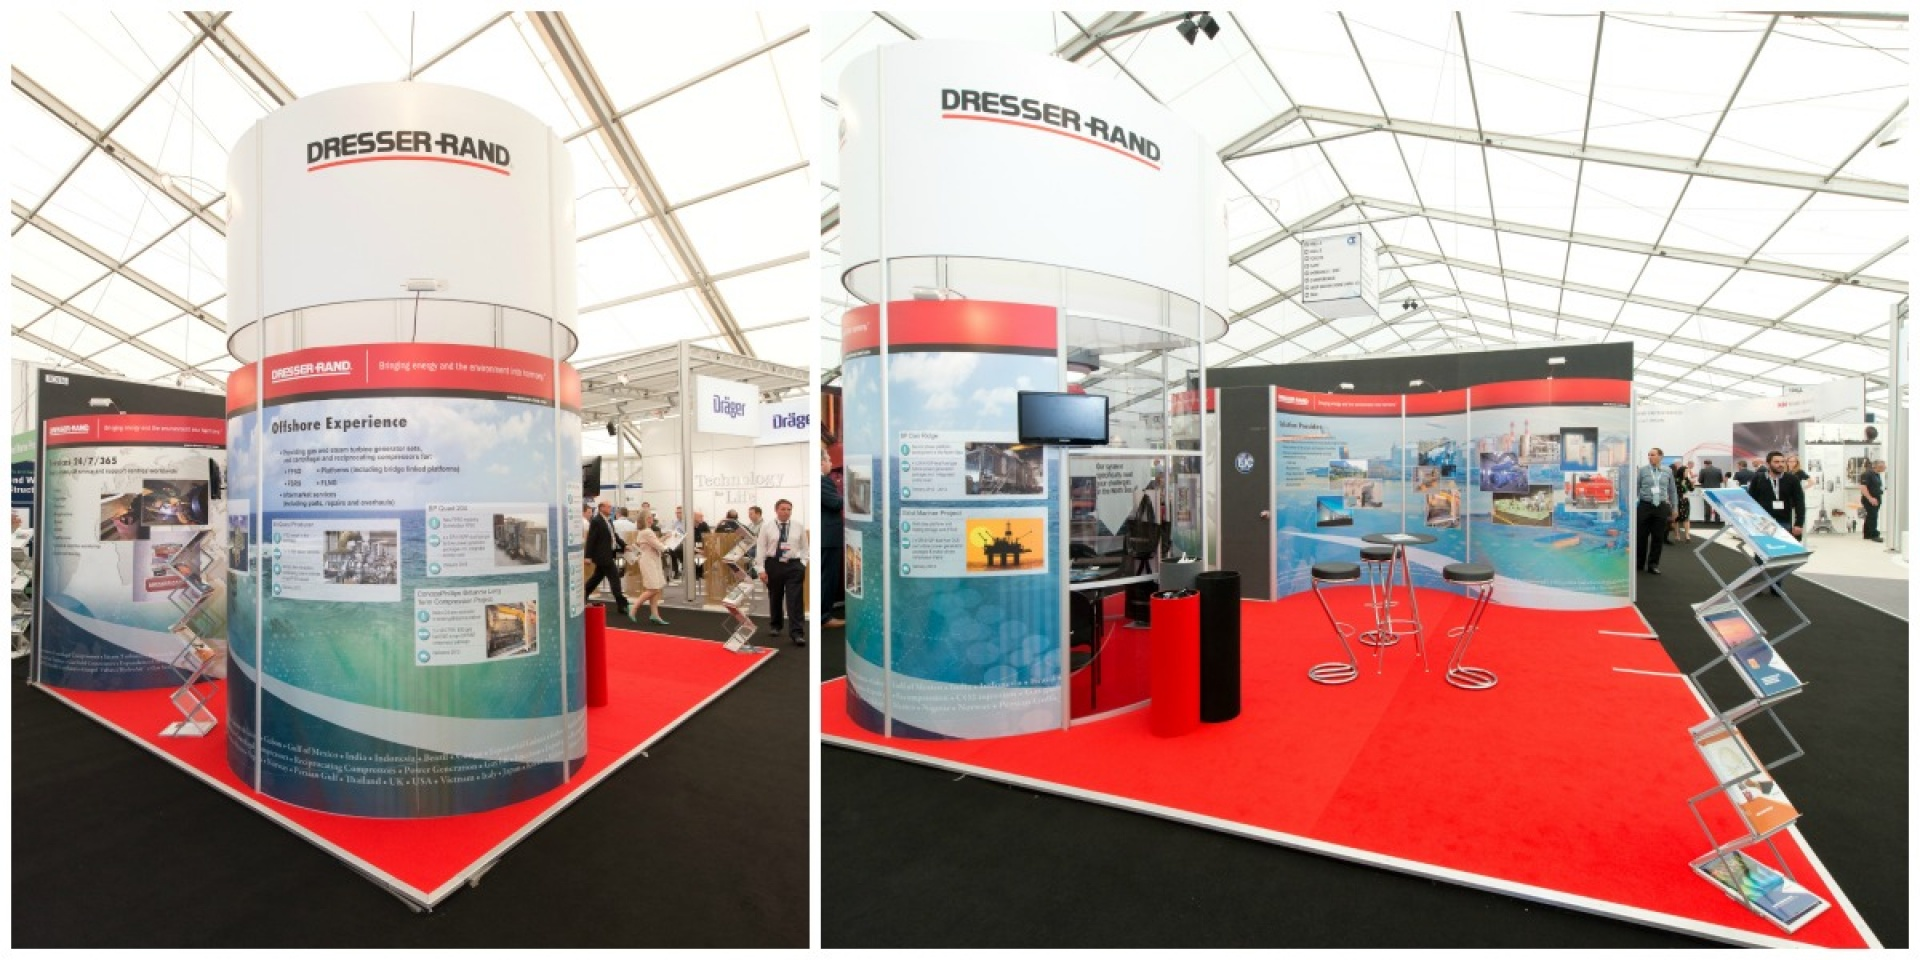 Dresser-Rand Exhibition stand graphics